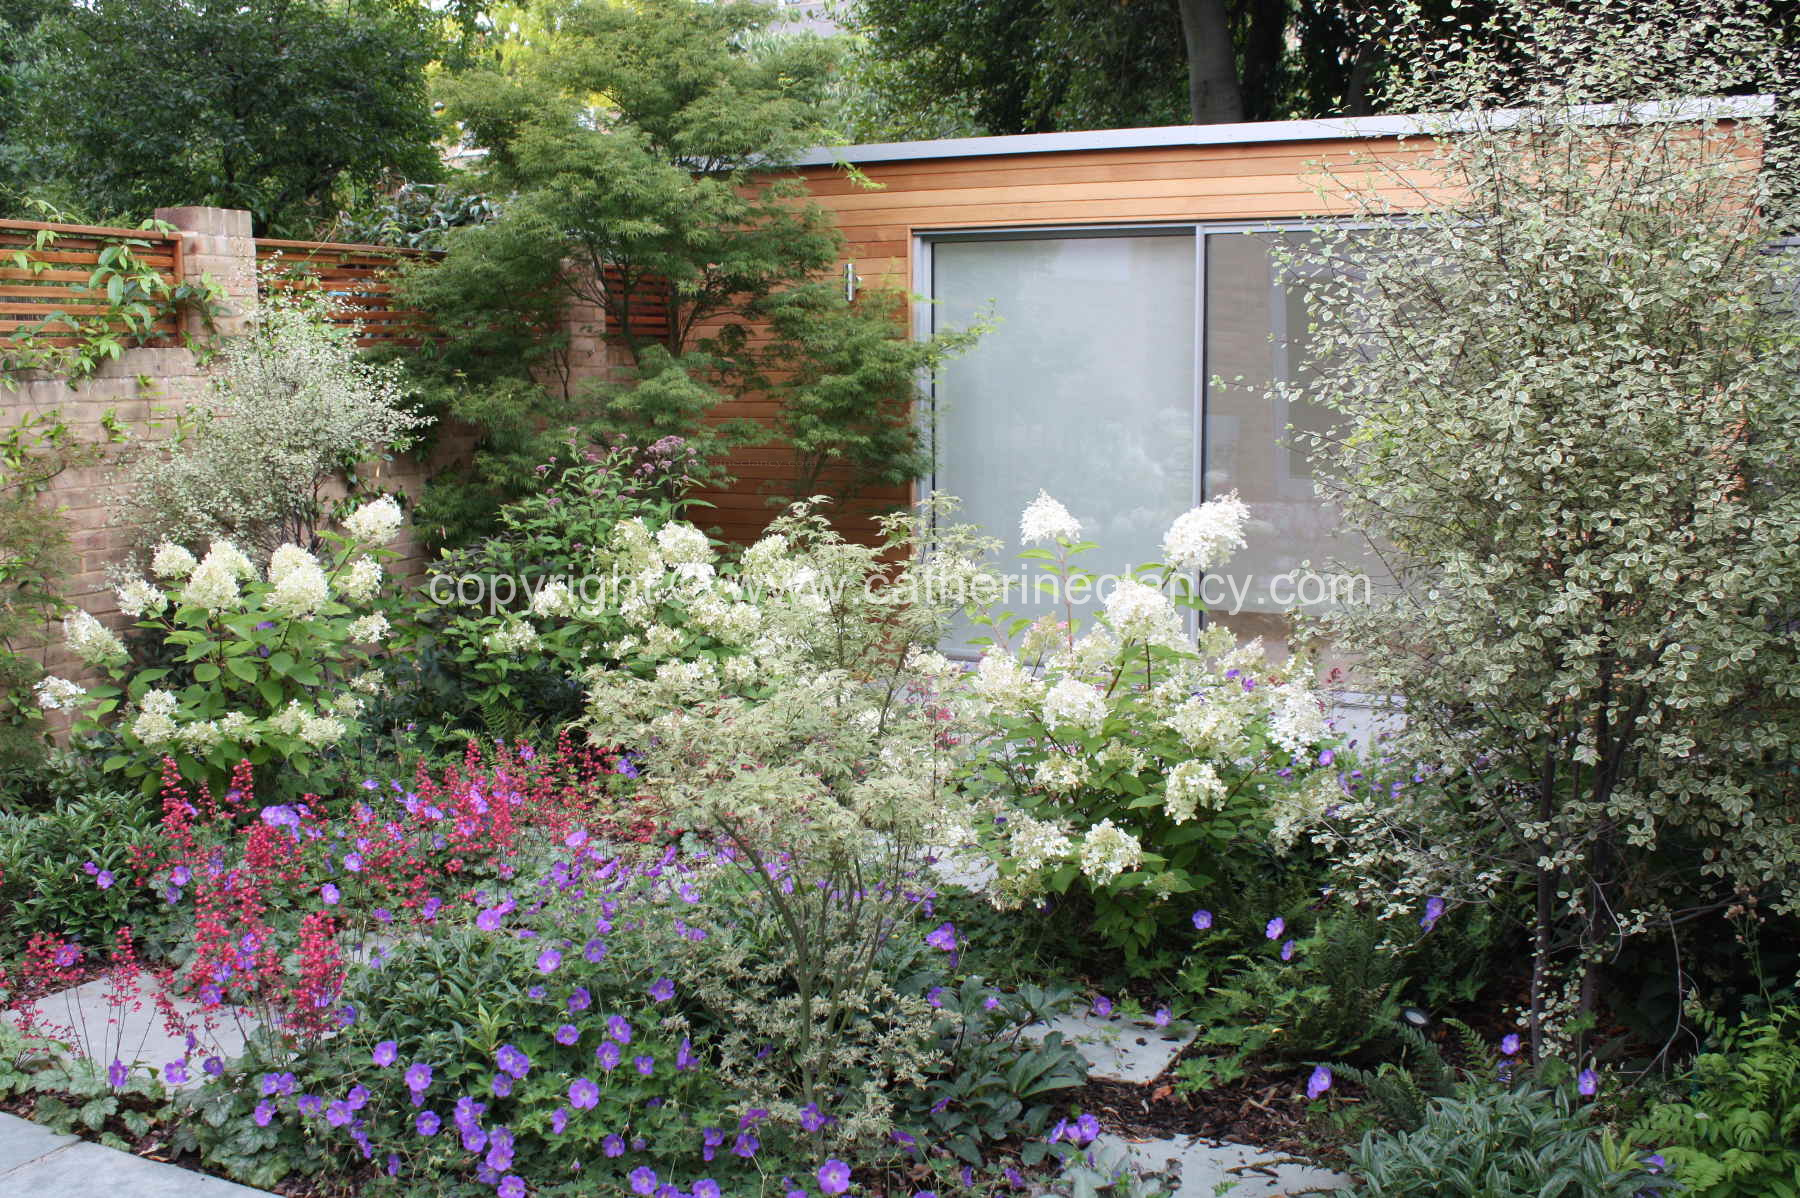 Artist Studio Garden By Blackheath based garden designer Catherine Clancy MSGD